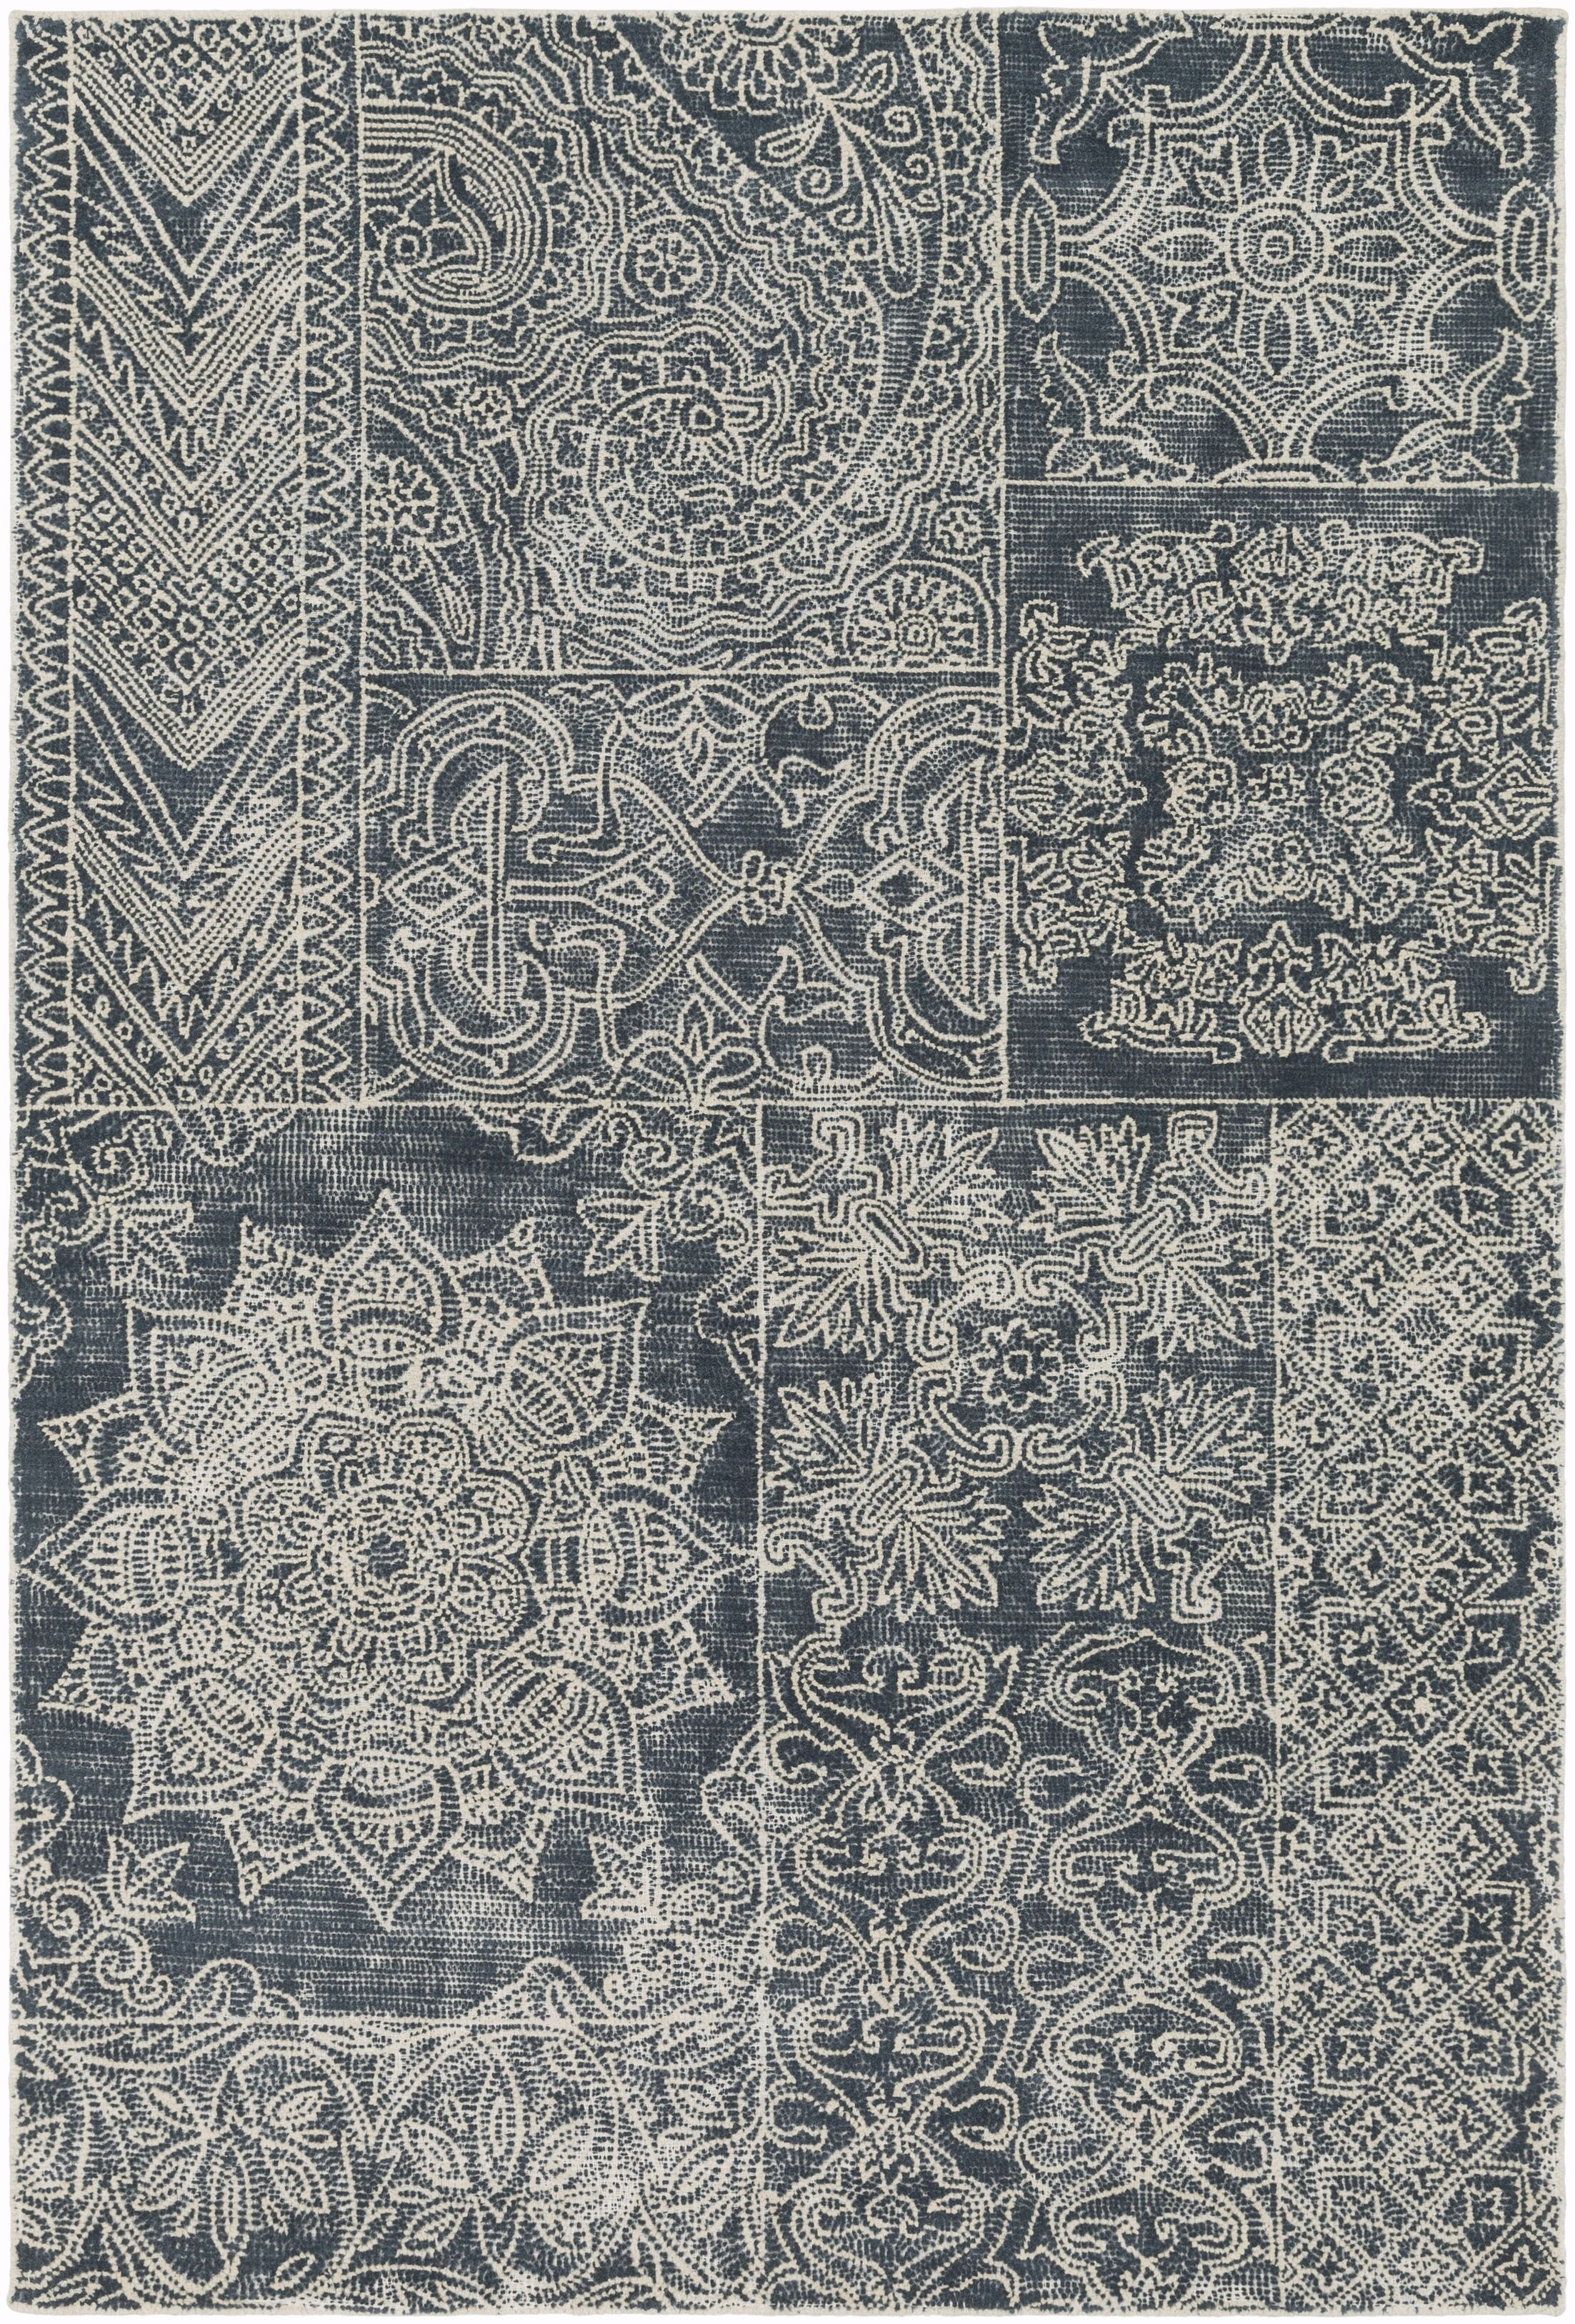 Knowland Hand-Tufted Navy/Cream Area Rug Rug Size: Rectangle 5' x 7'6